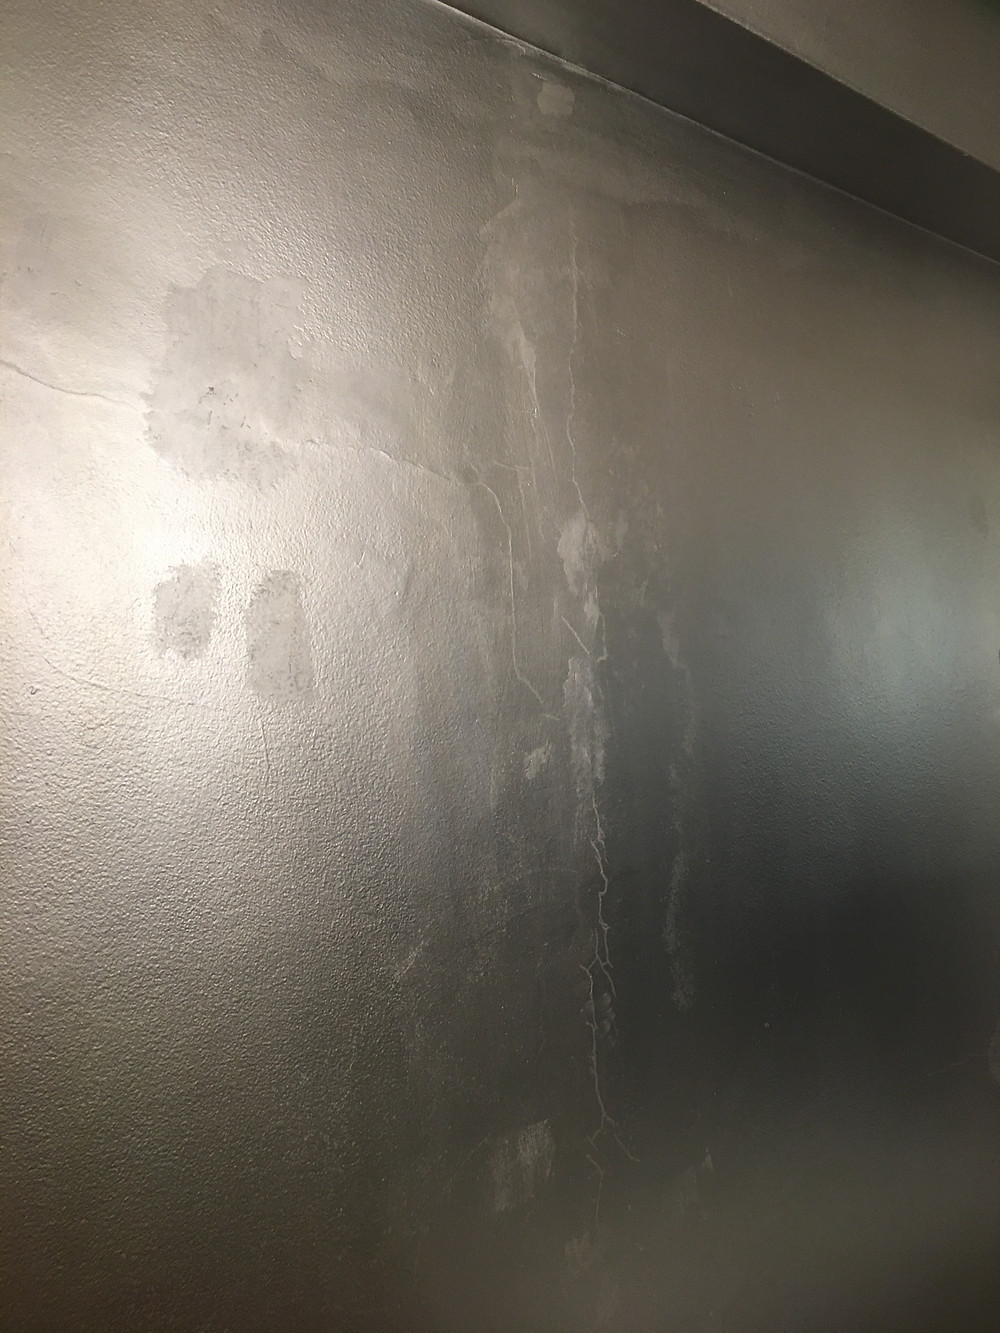 Painting over cracks on a wall with metallic paint